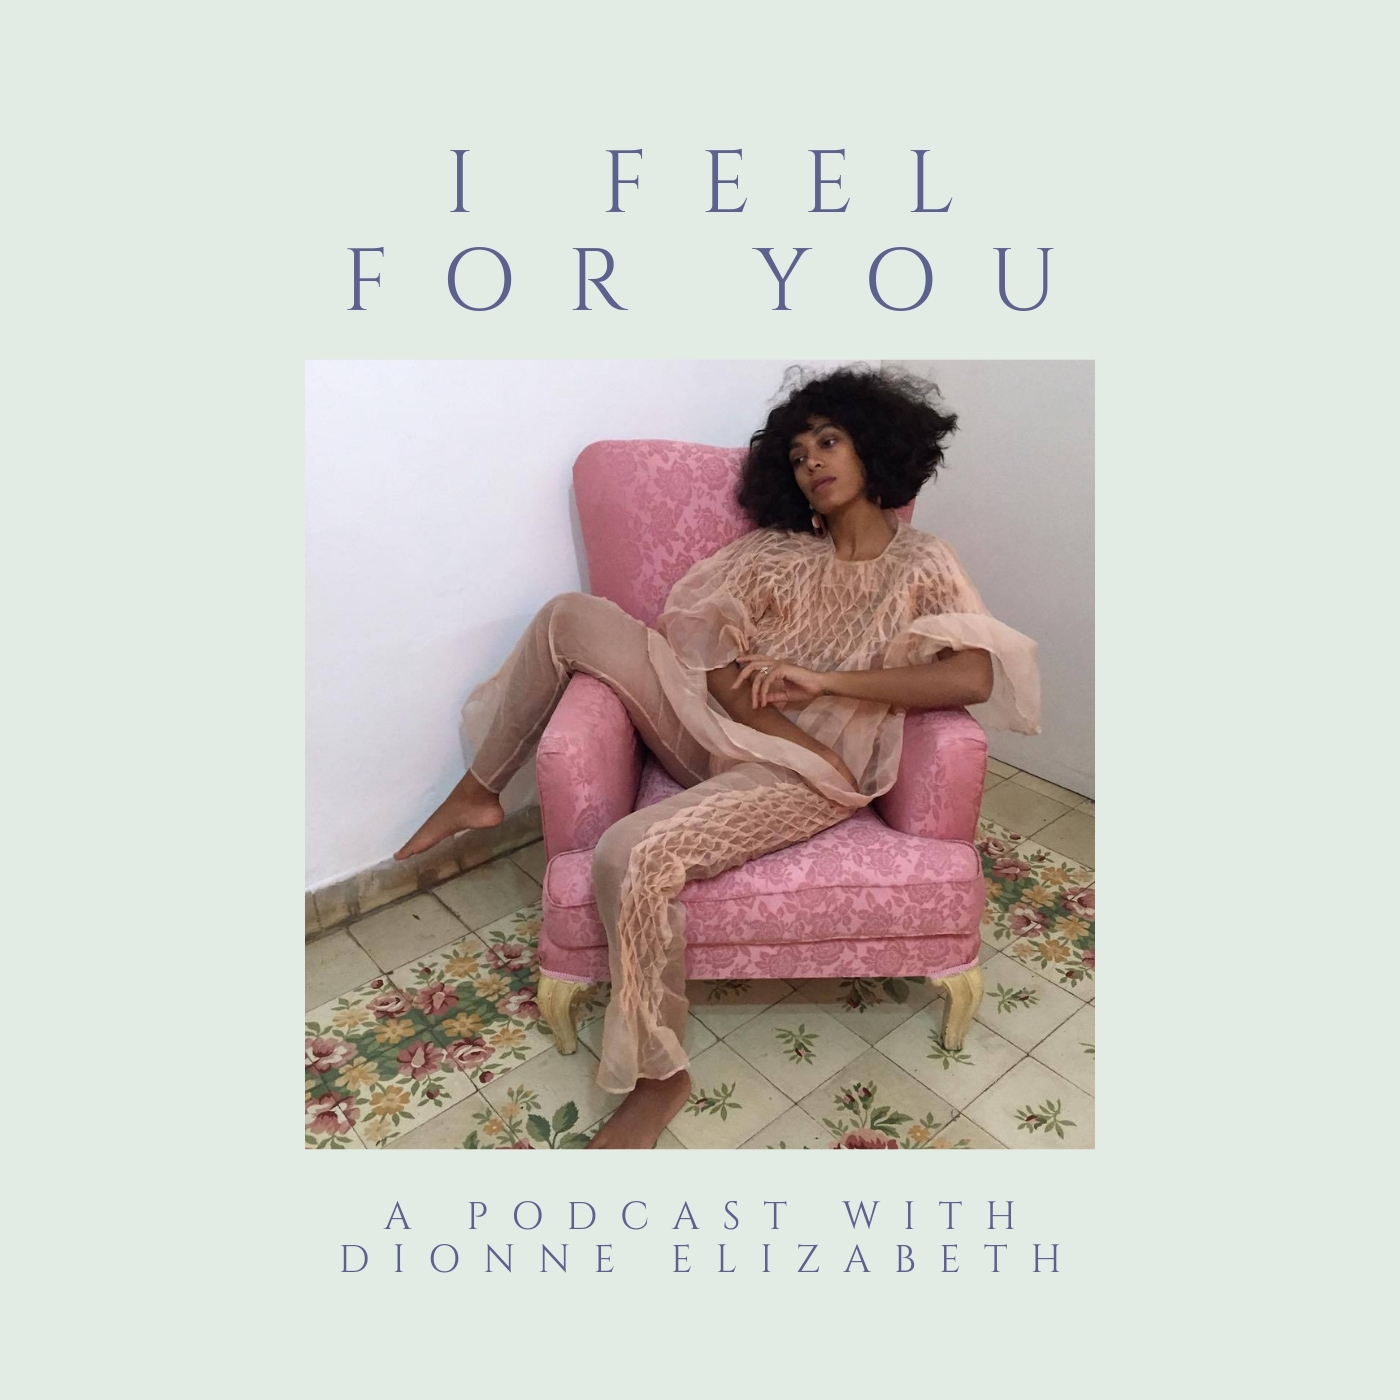 I Feel For You podcast episode 28